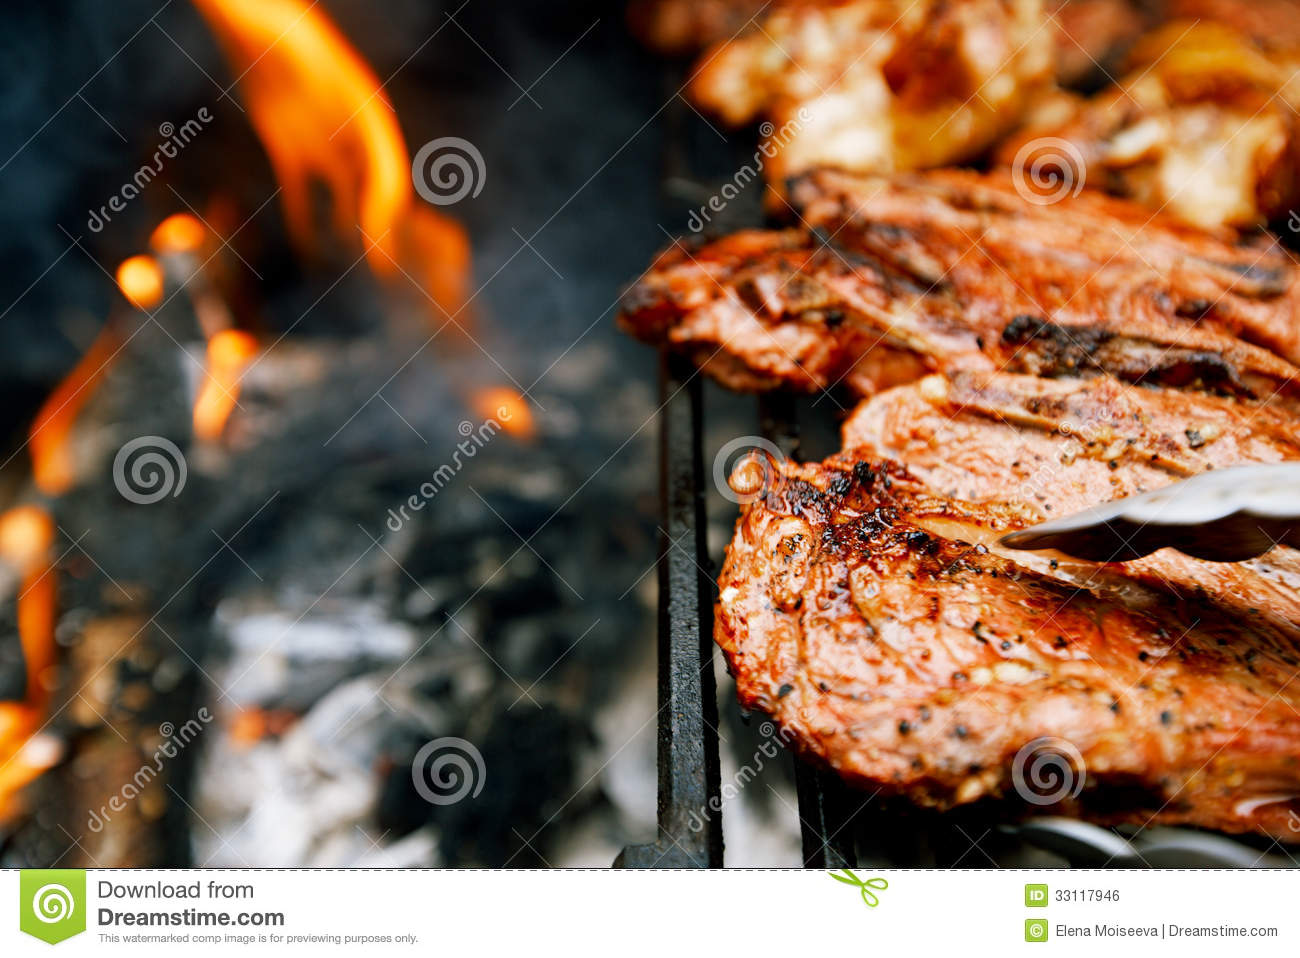 Food meat - chicken and beef on party summer barbecue grill